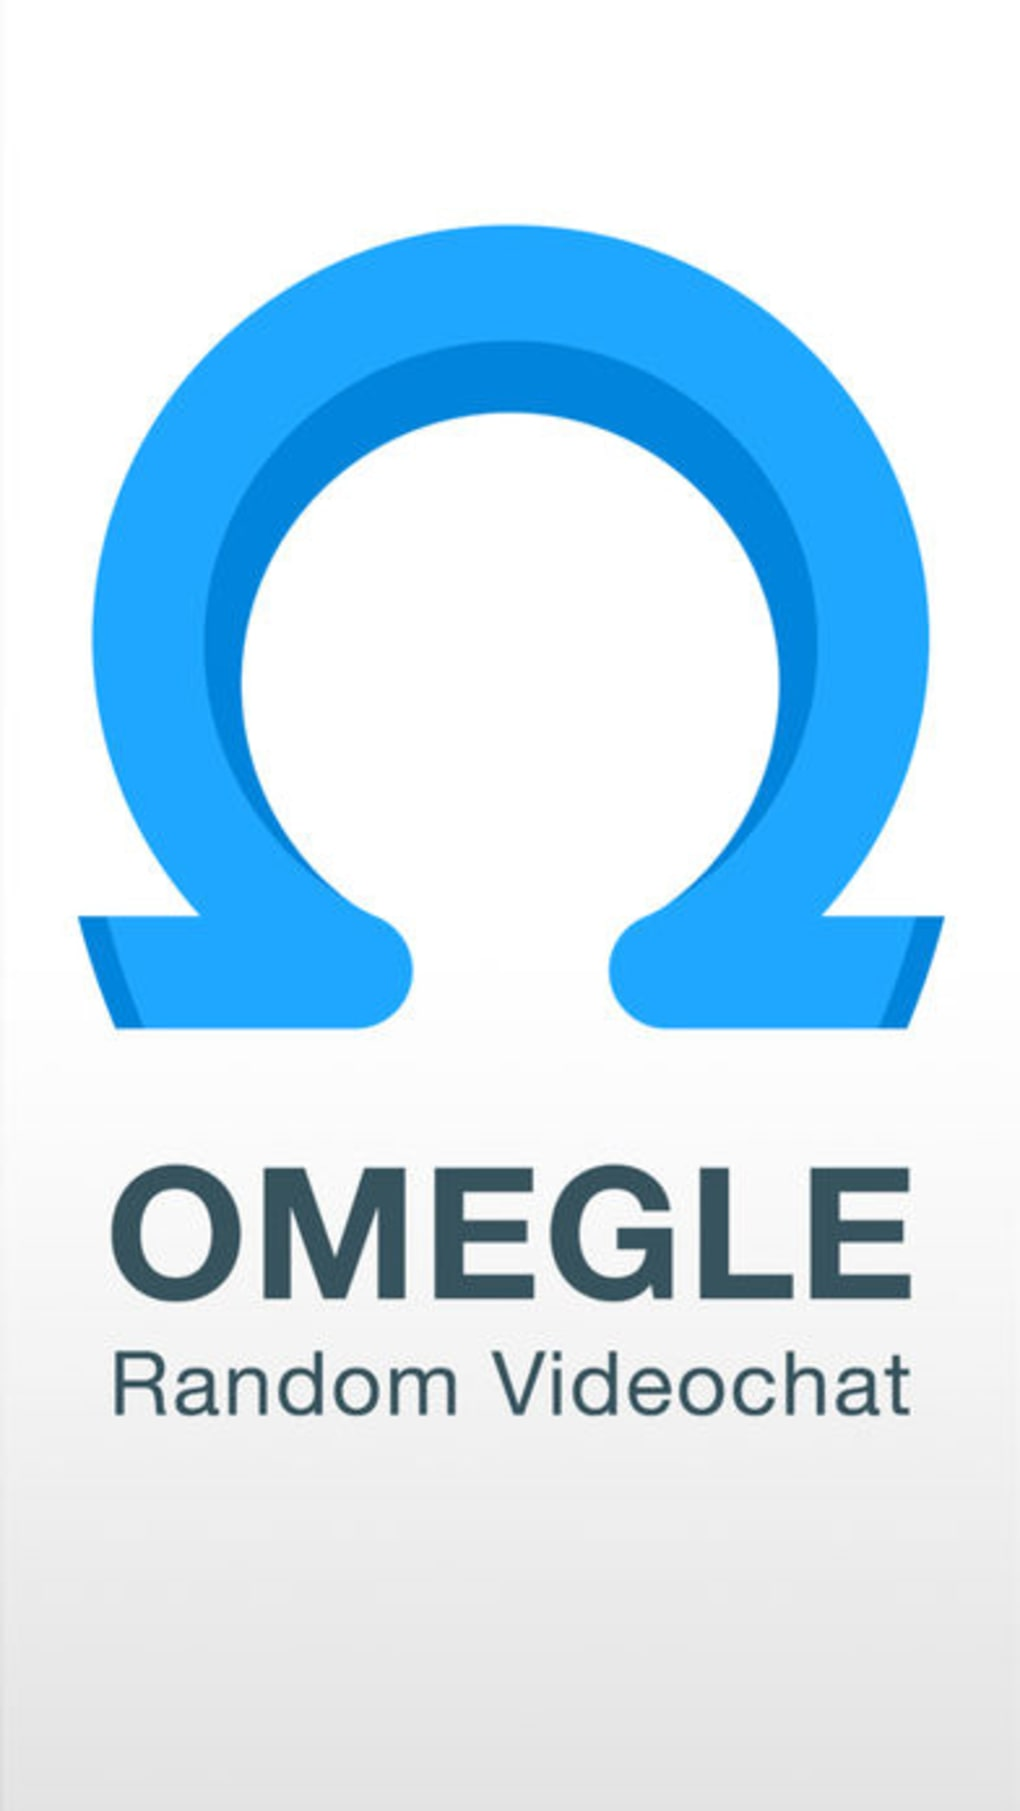 Iphone app video omegle chat Partyhub